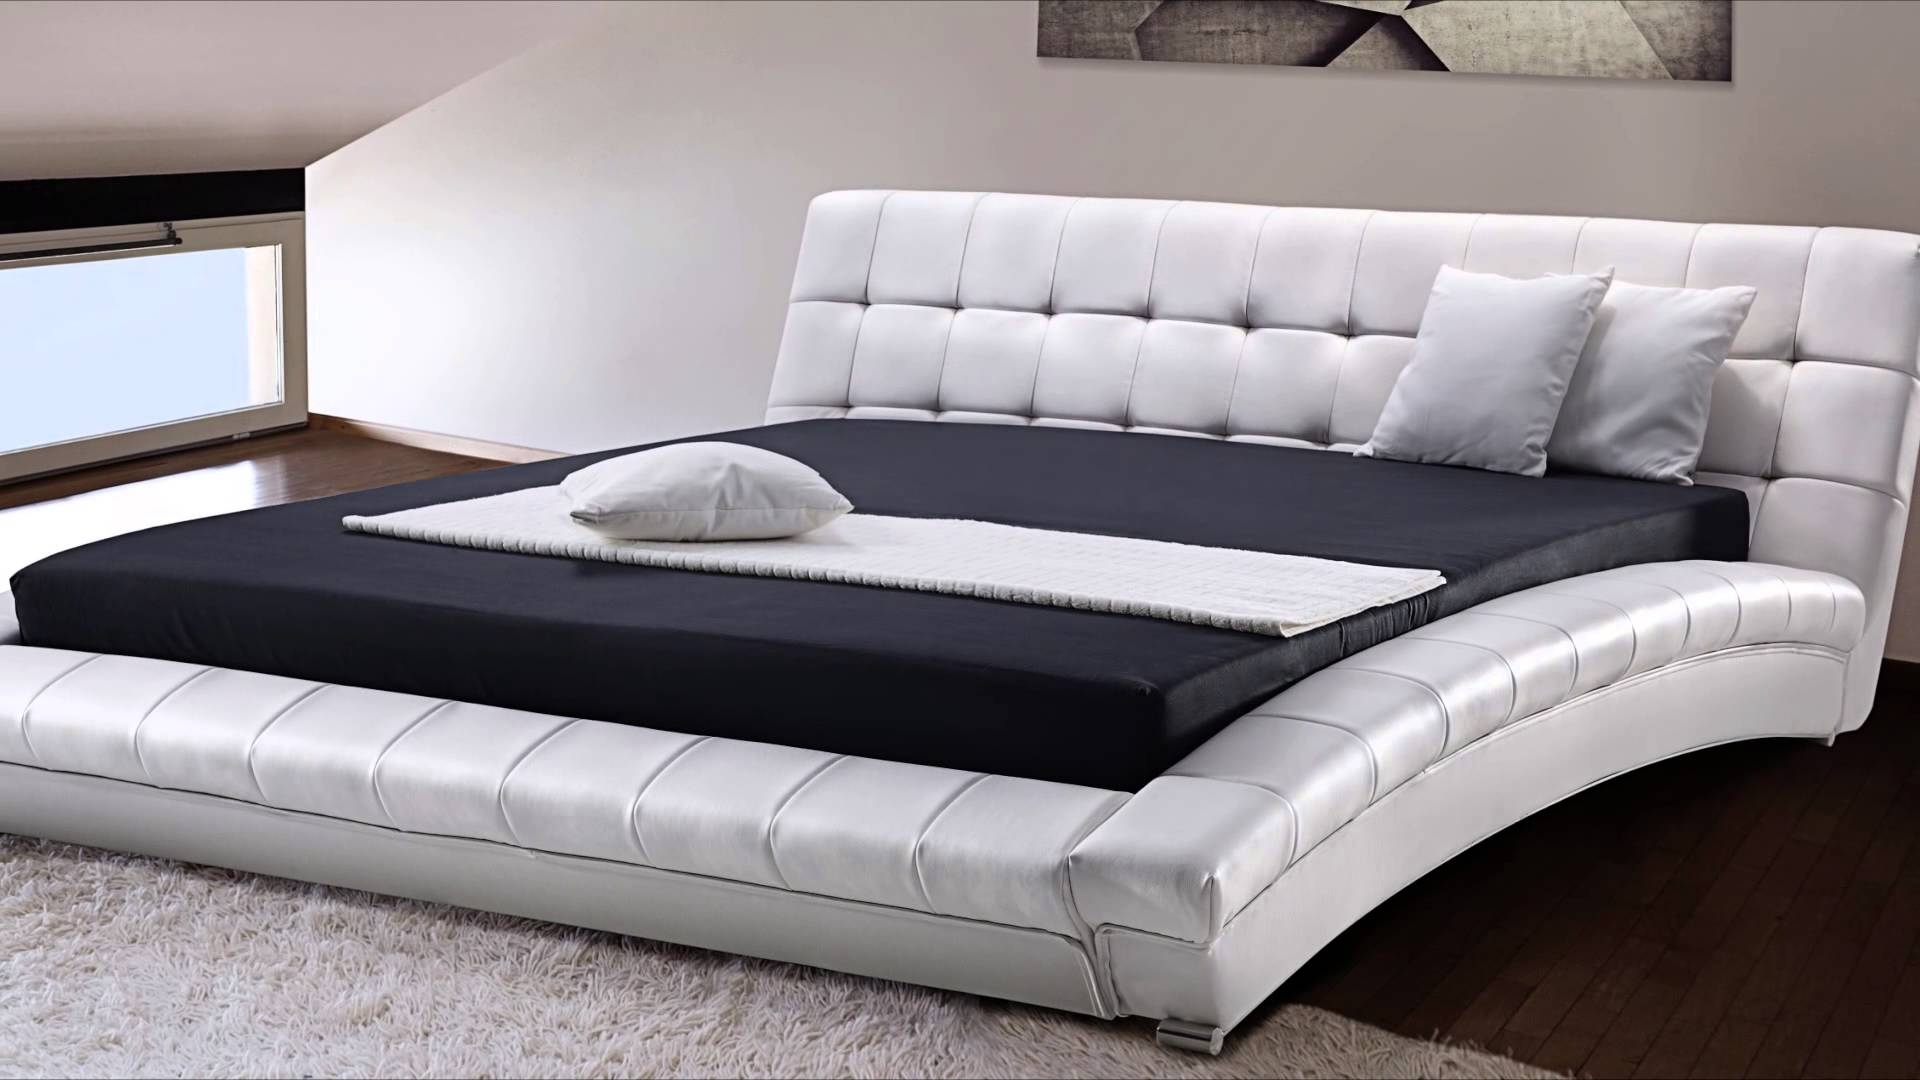 Permalink to Super King Size Leather Bed Frames